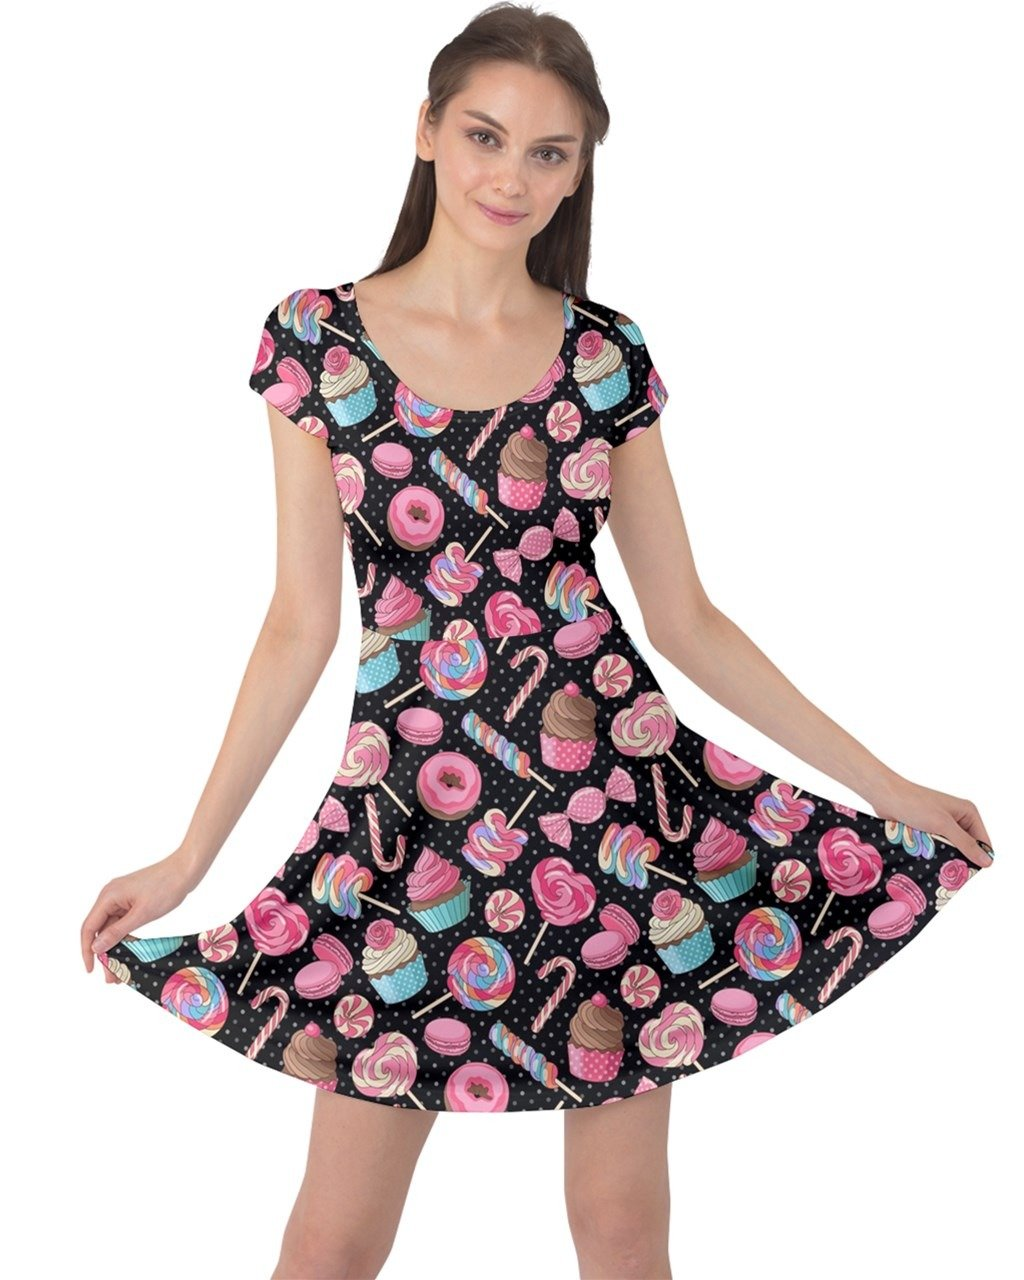 CowCow Womens Black Yummy Colorful Sweet Lollipop Candy Macaroon Cupcake Donut Cap Sleeve Dress, Black - M by CowCow